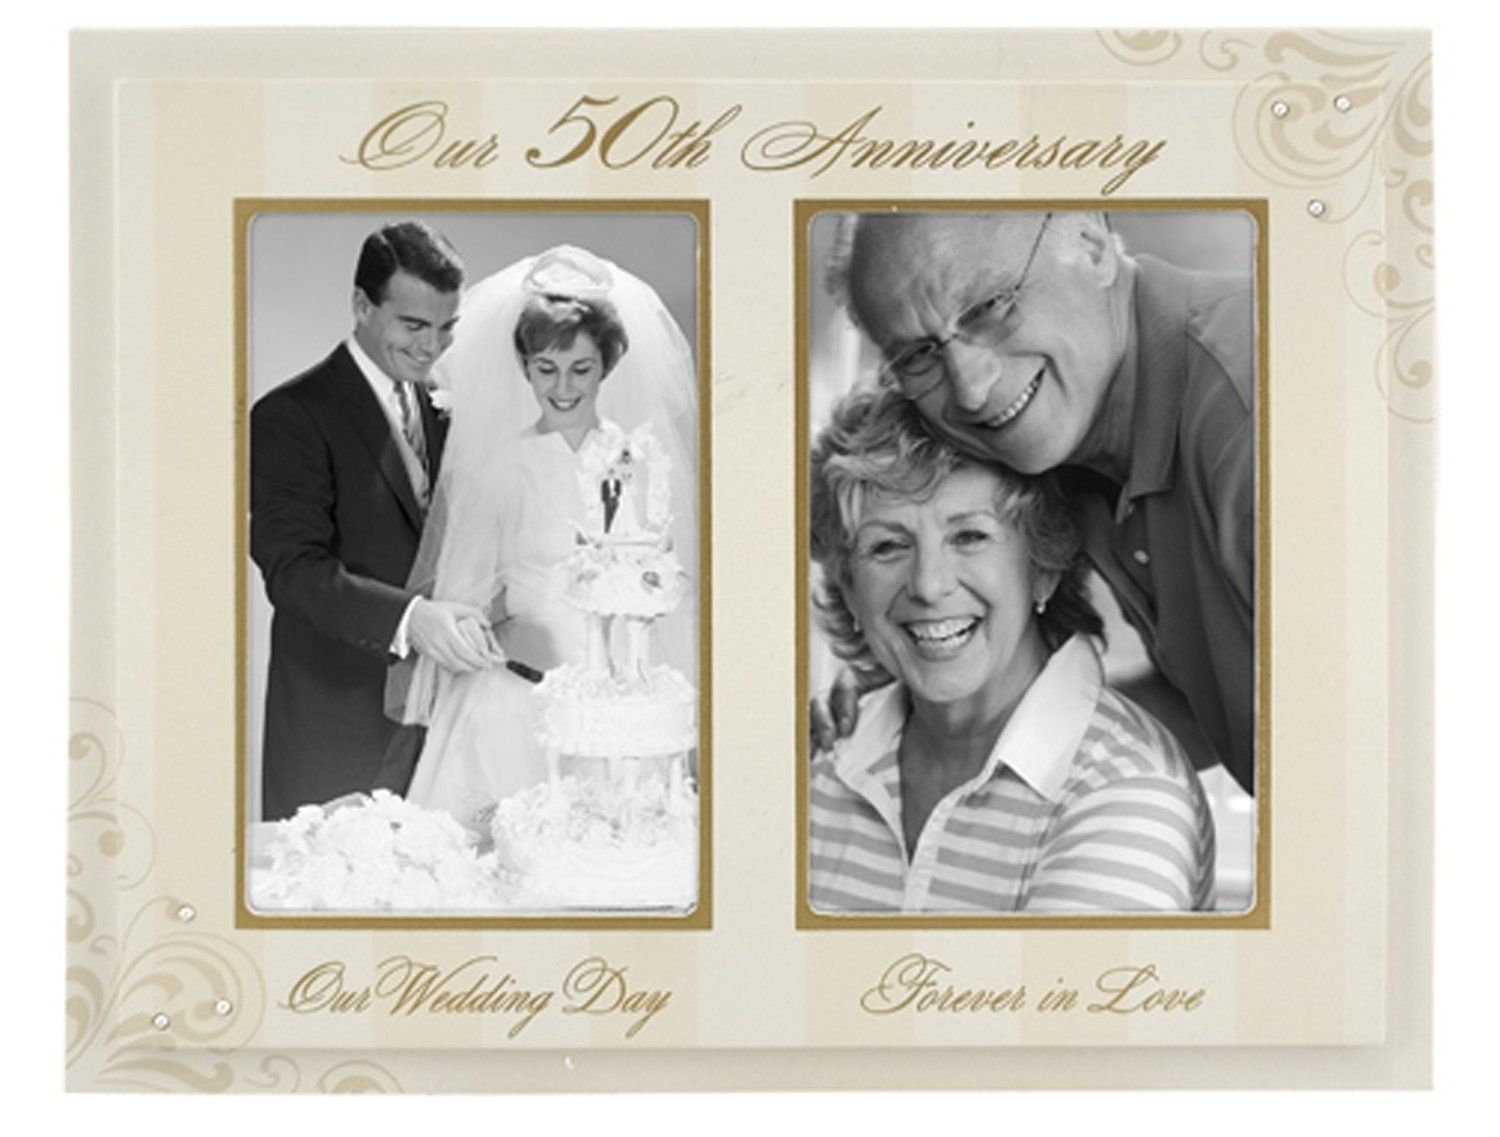 Ideas What Is The Gift For 50th Wedding Anniversary 1000 images about anniversary on pinterest 50th wedding gift gifts and gifts